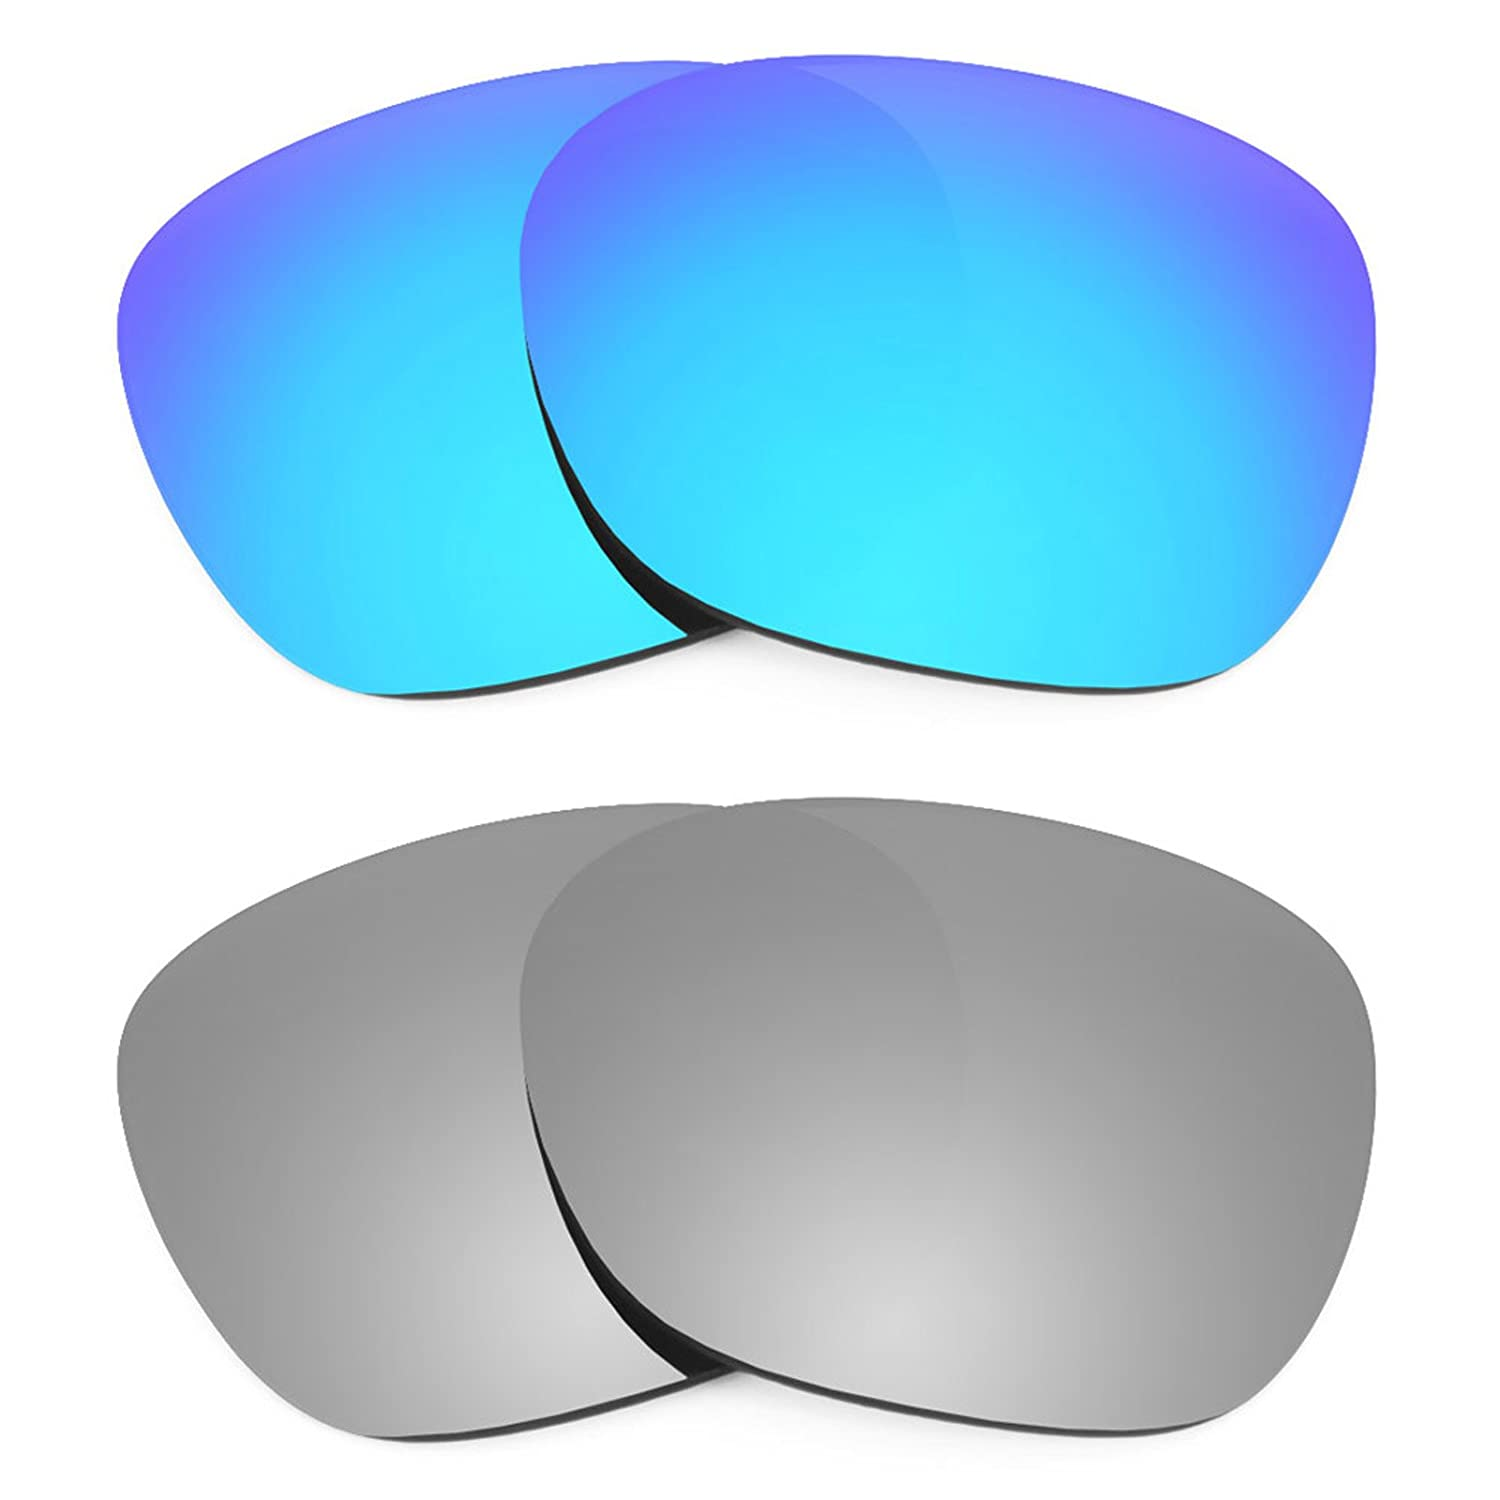 bce54c23e1 Revant Replacement Lenses for Oakley Garage Rock 2 Pair Combo Pack K004 at  Amazon Men s Clothing store